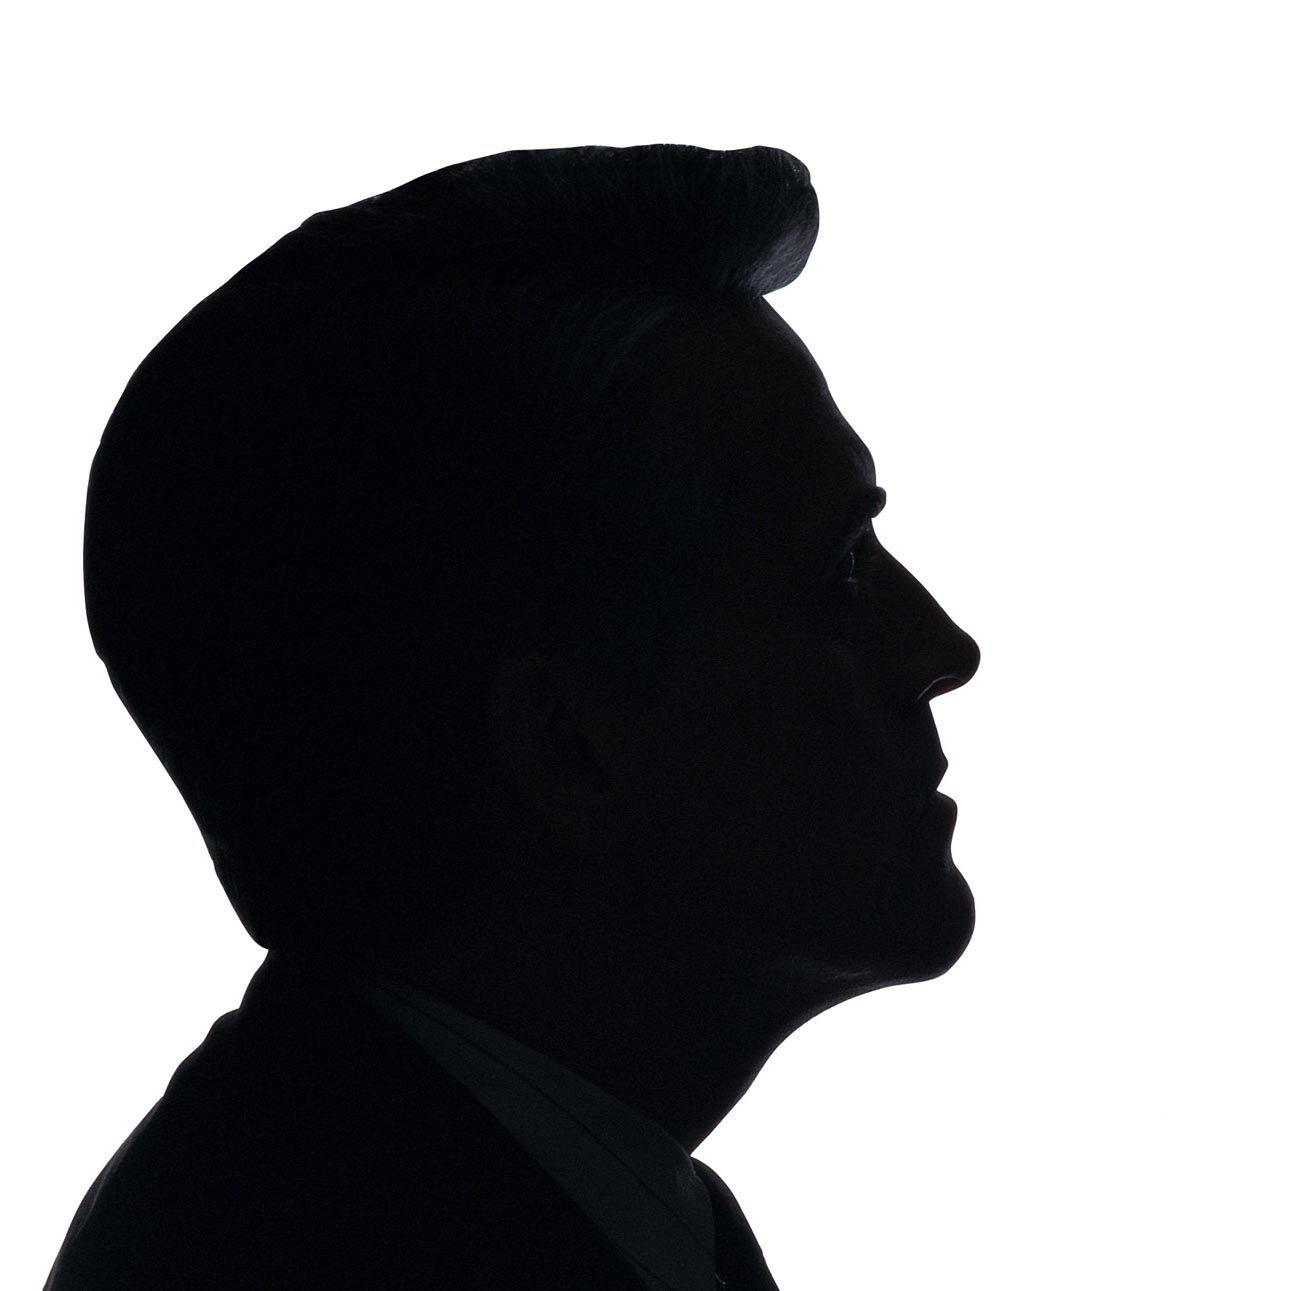 Male Face Silhouette.